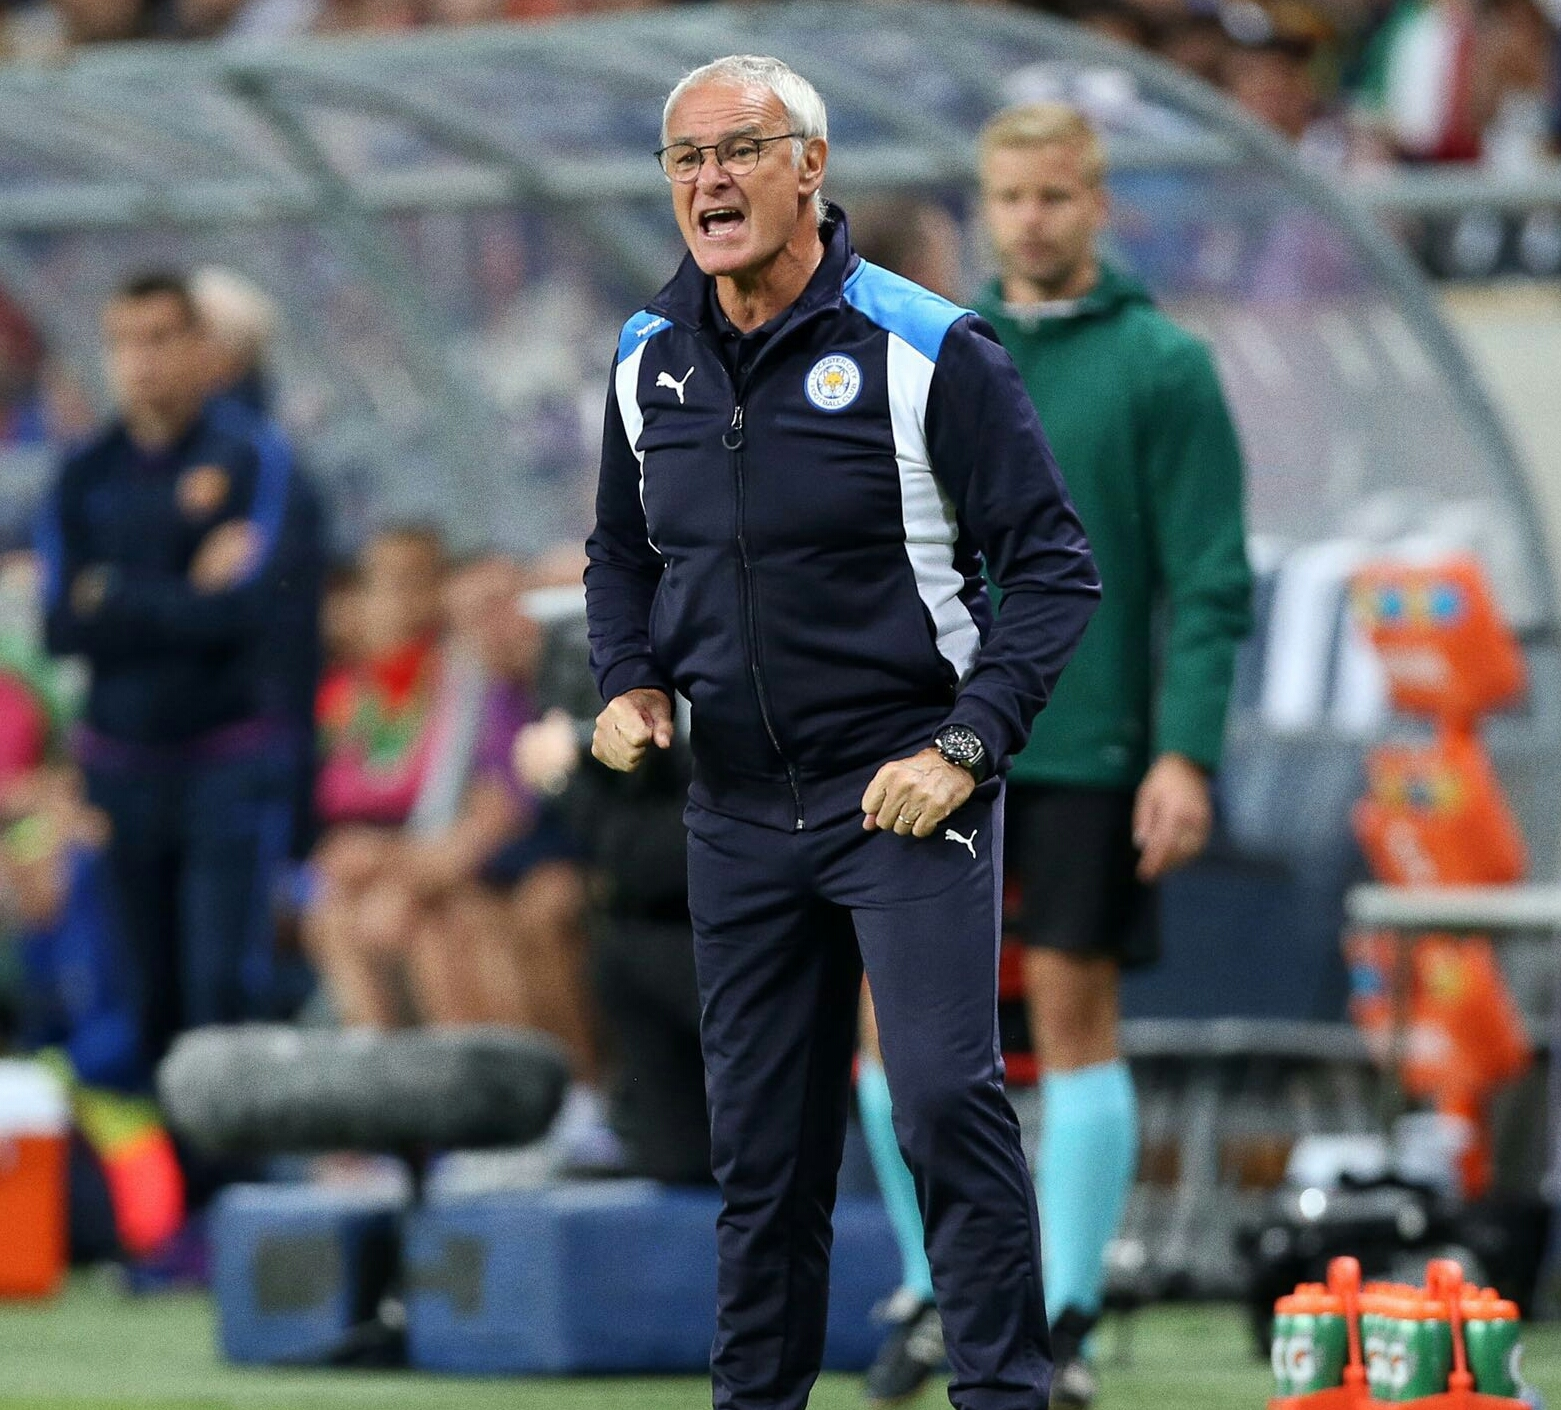 Ranieri Warns Man United: Community Shield Is No Friendly